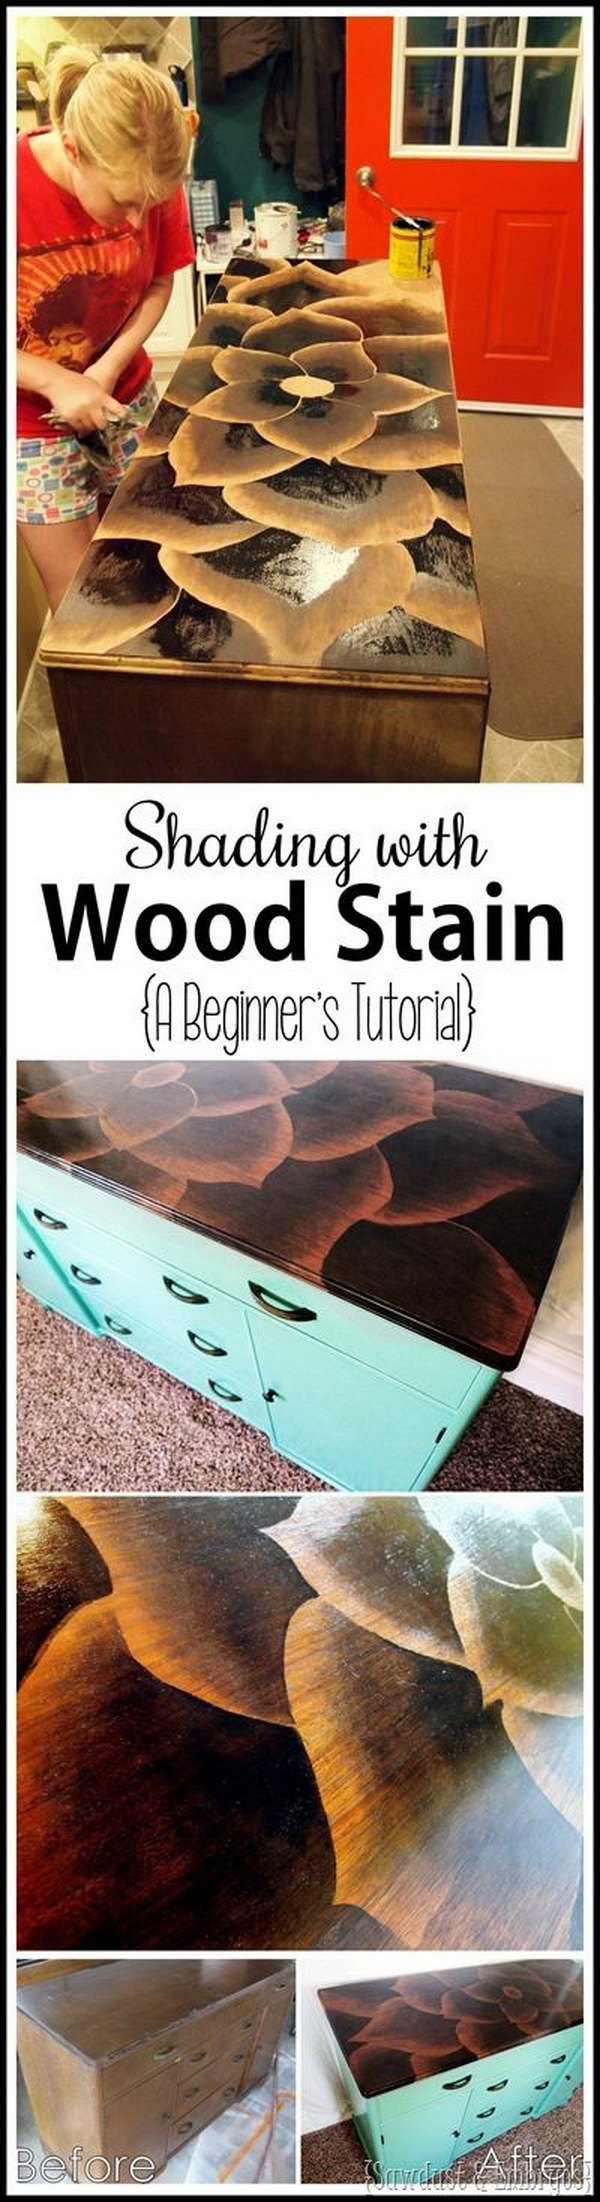 2 Using Stain To Make Artwork on Furniture